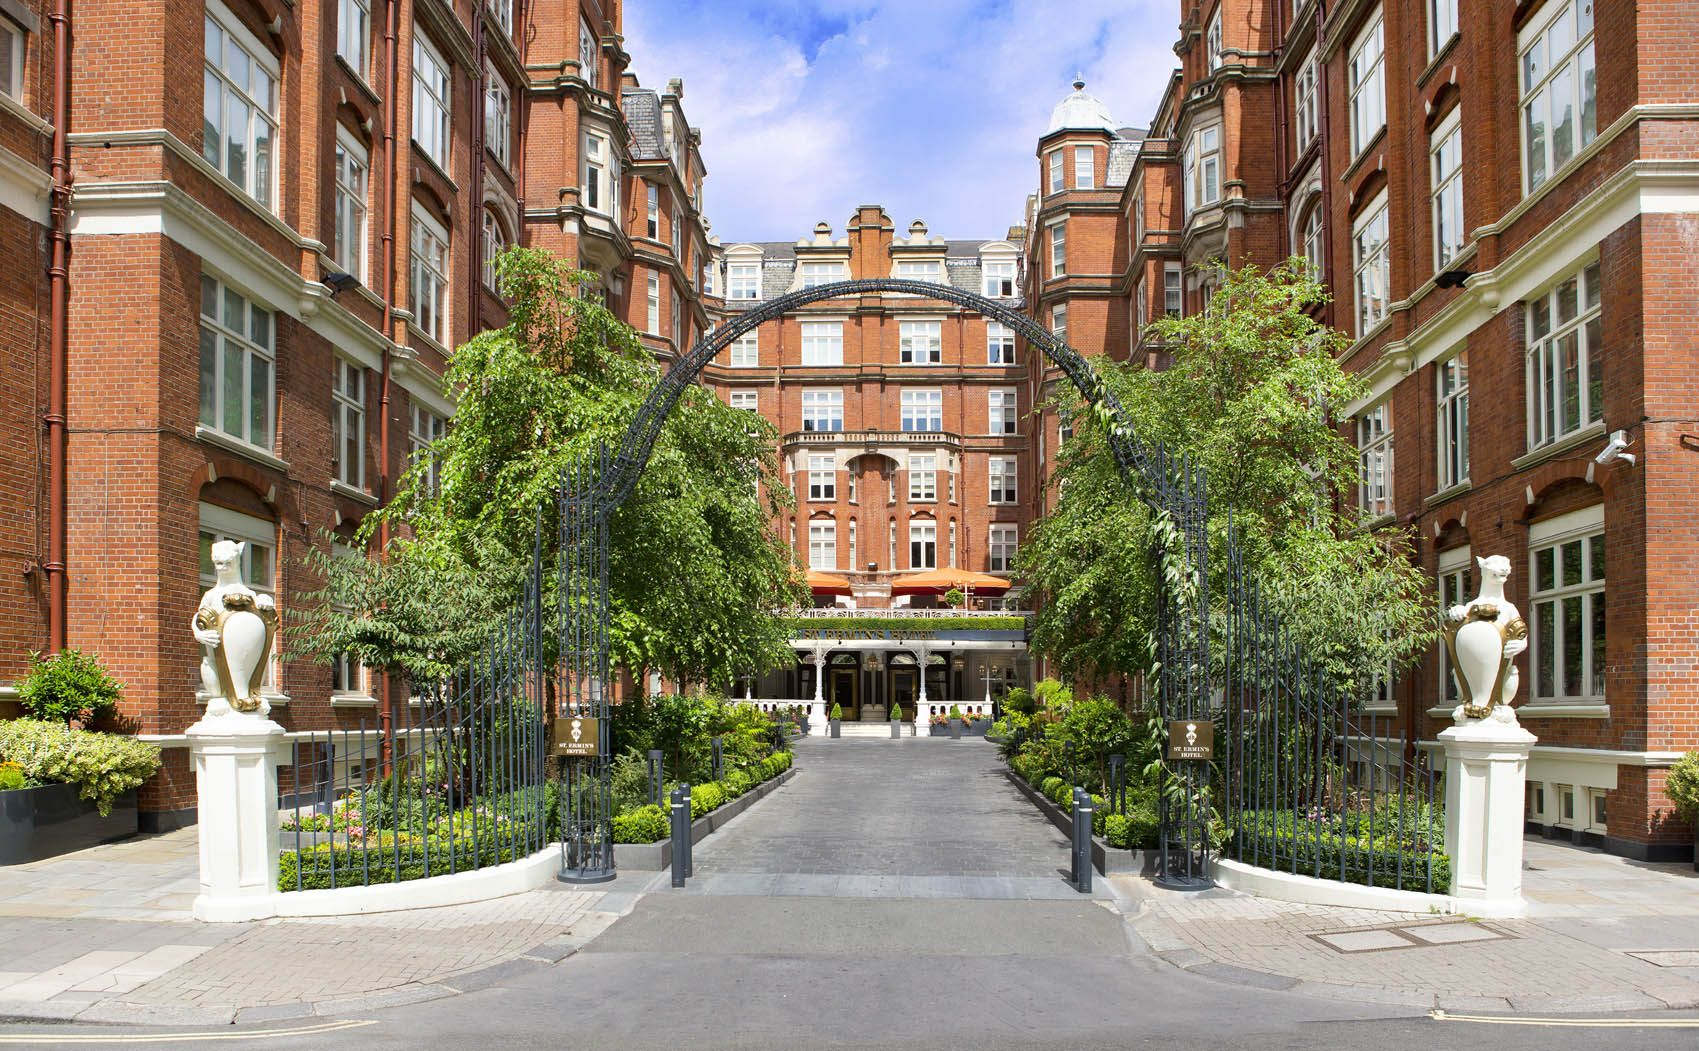 St Ermin's exterior day